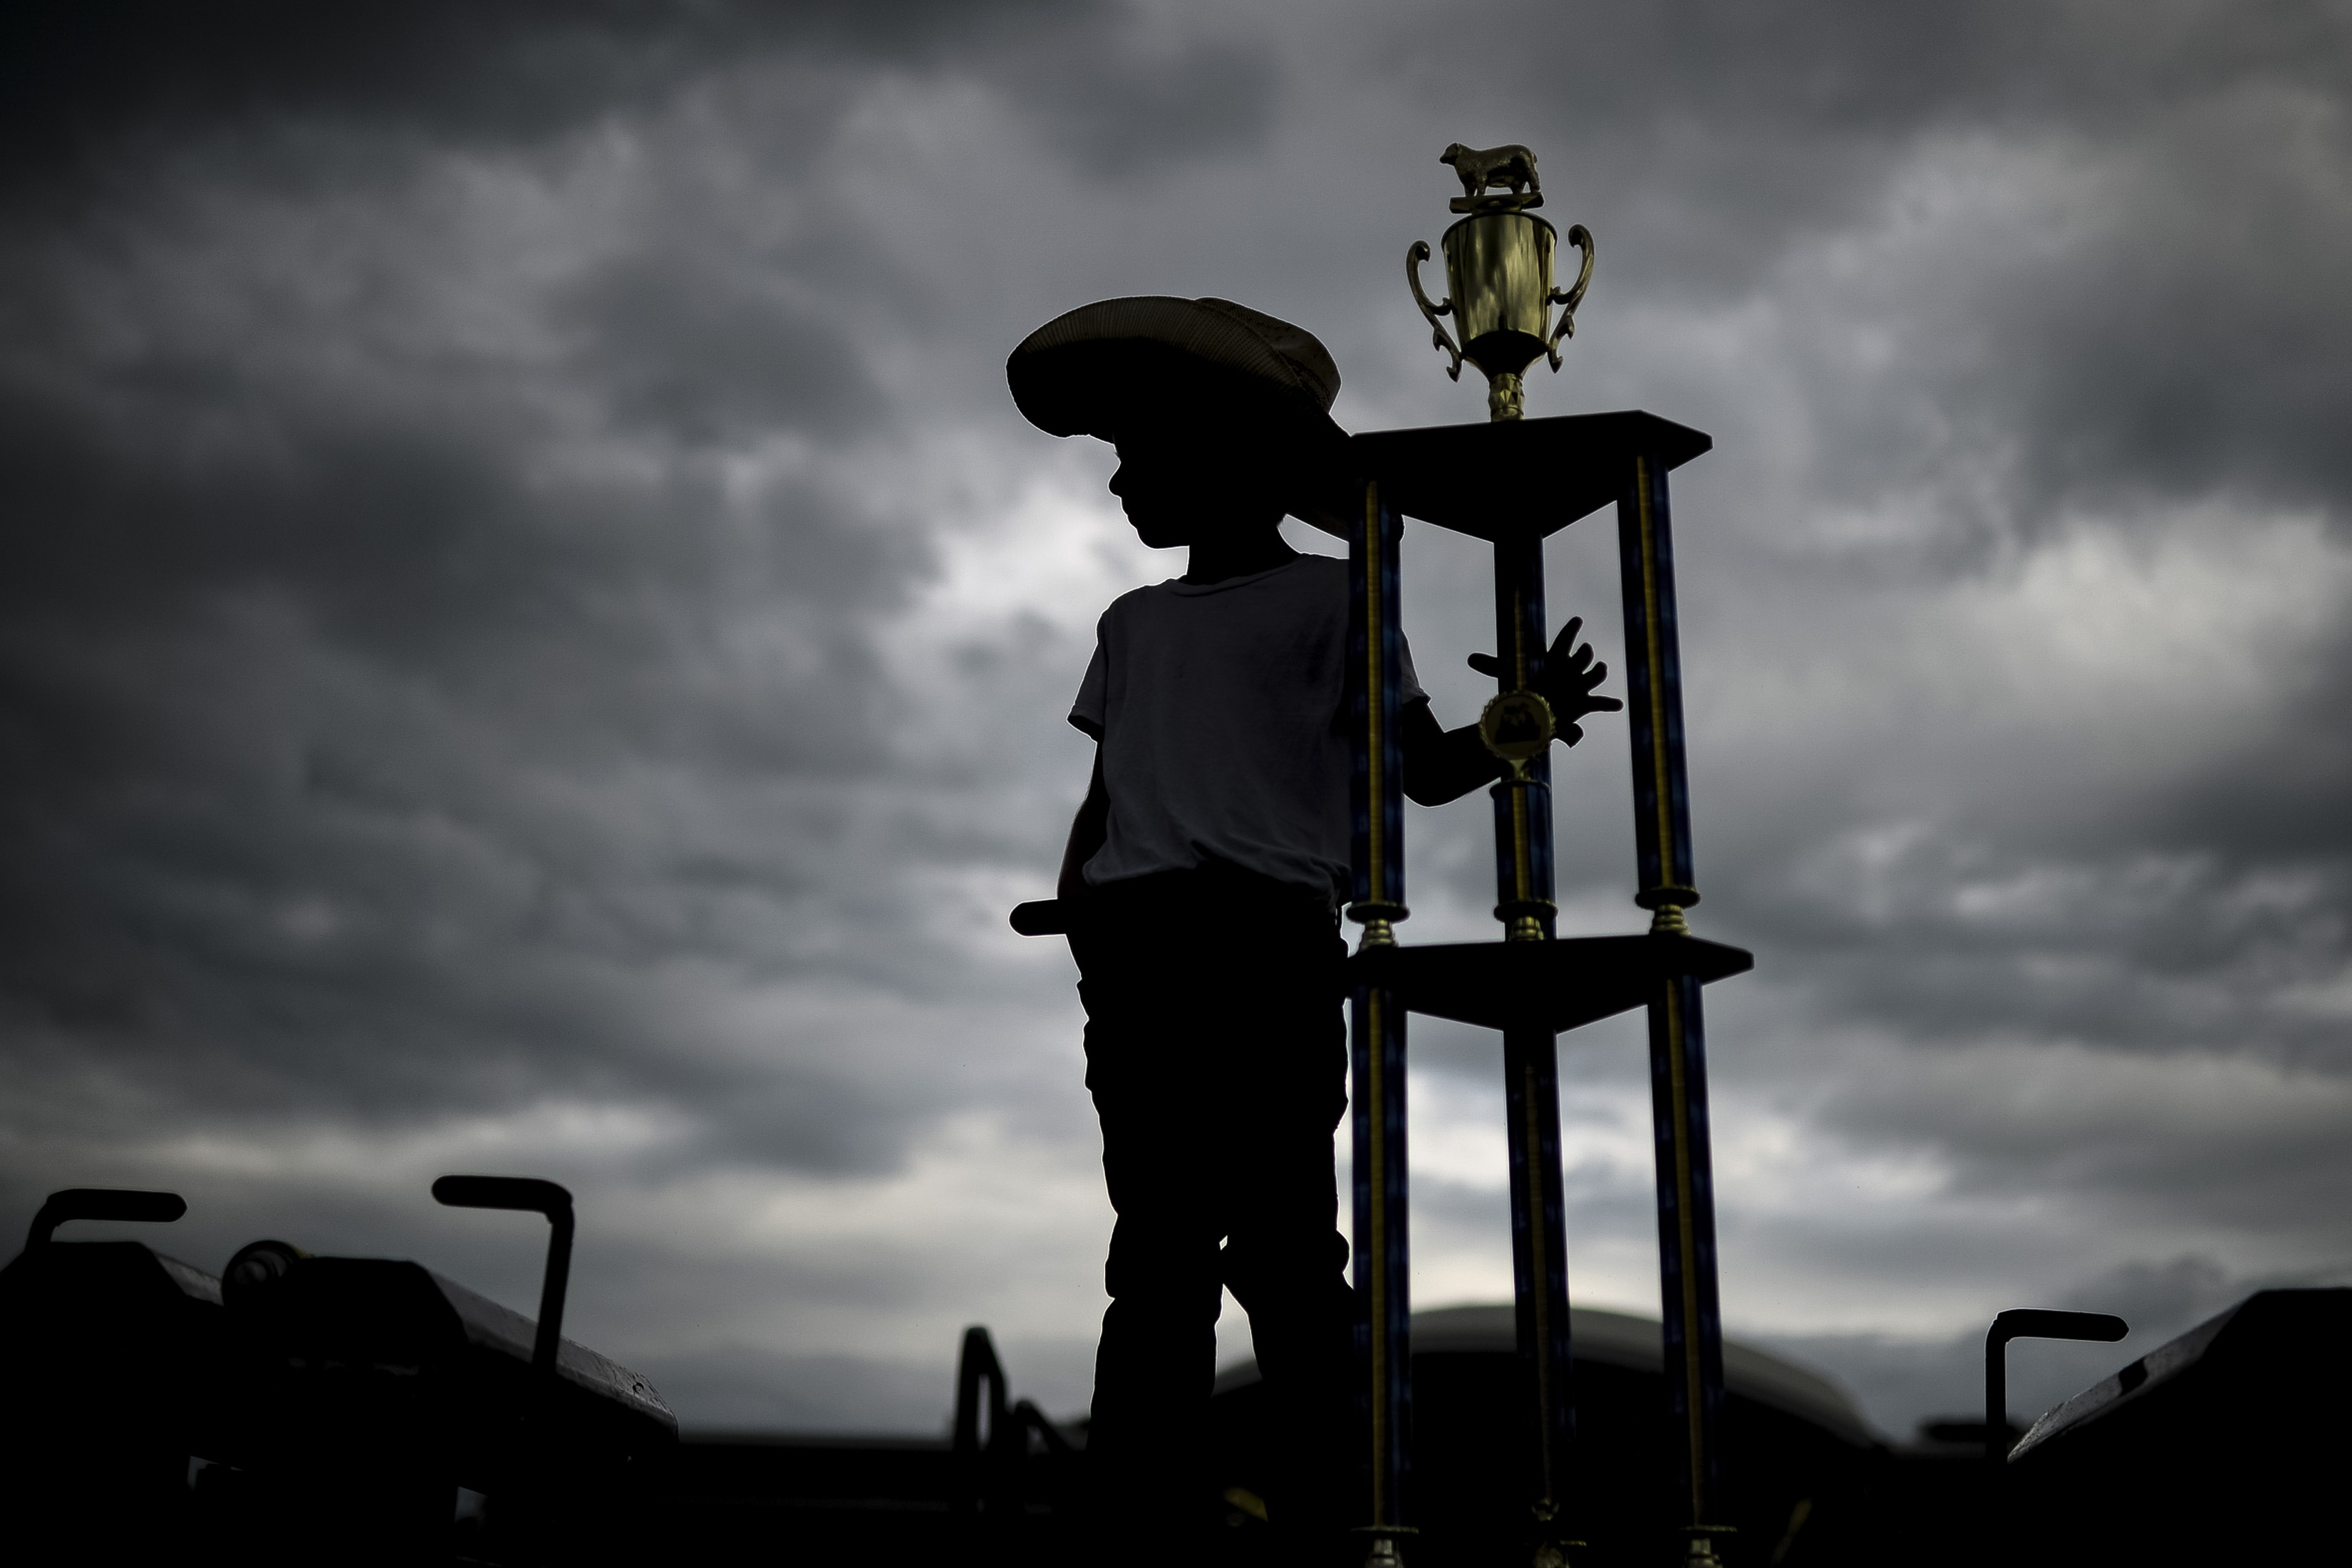 UNITED STATES - AUGUST 18: A fairgoer stands with his first place trophy after competition in the championship round of the Mutton Bustin' competition at the Iowa State Fair on Sunday August 18, 2019. (Photo by Caroline Brehman/CQ Roll Call)